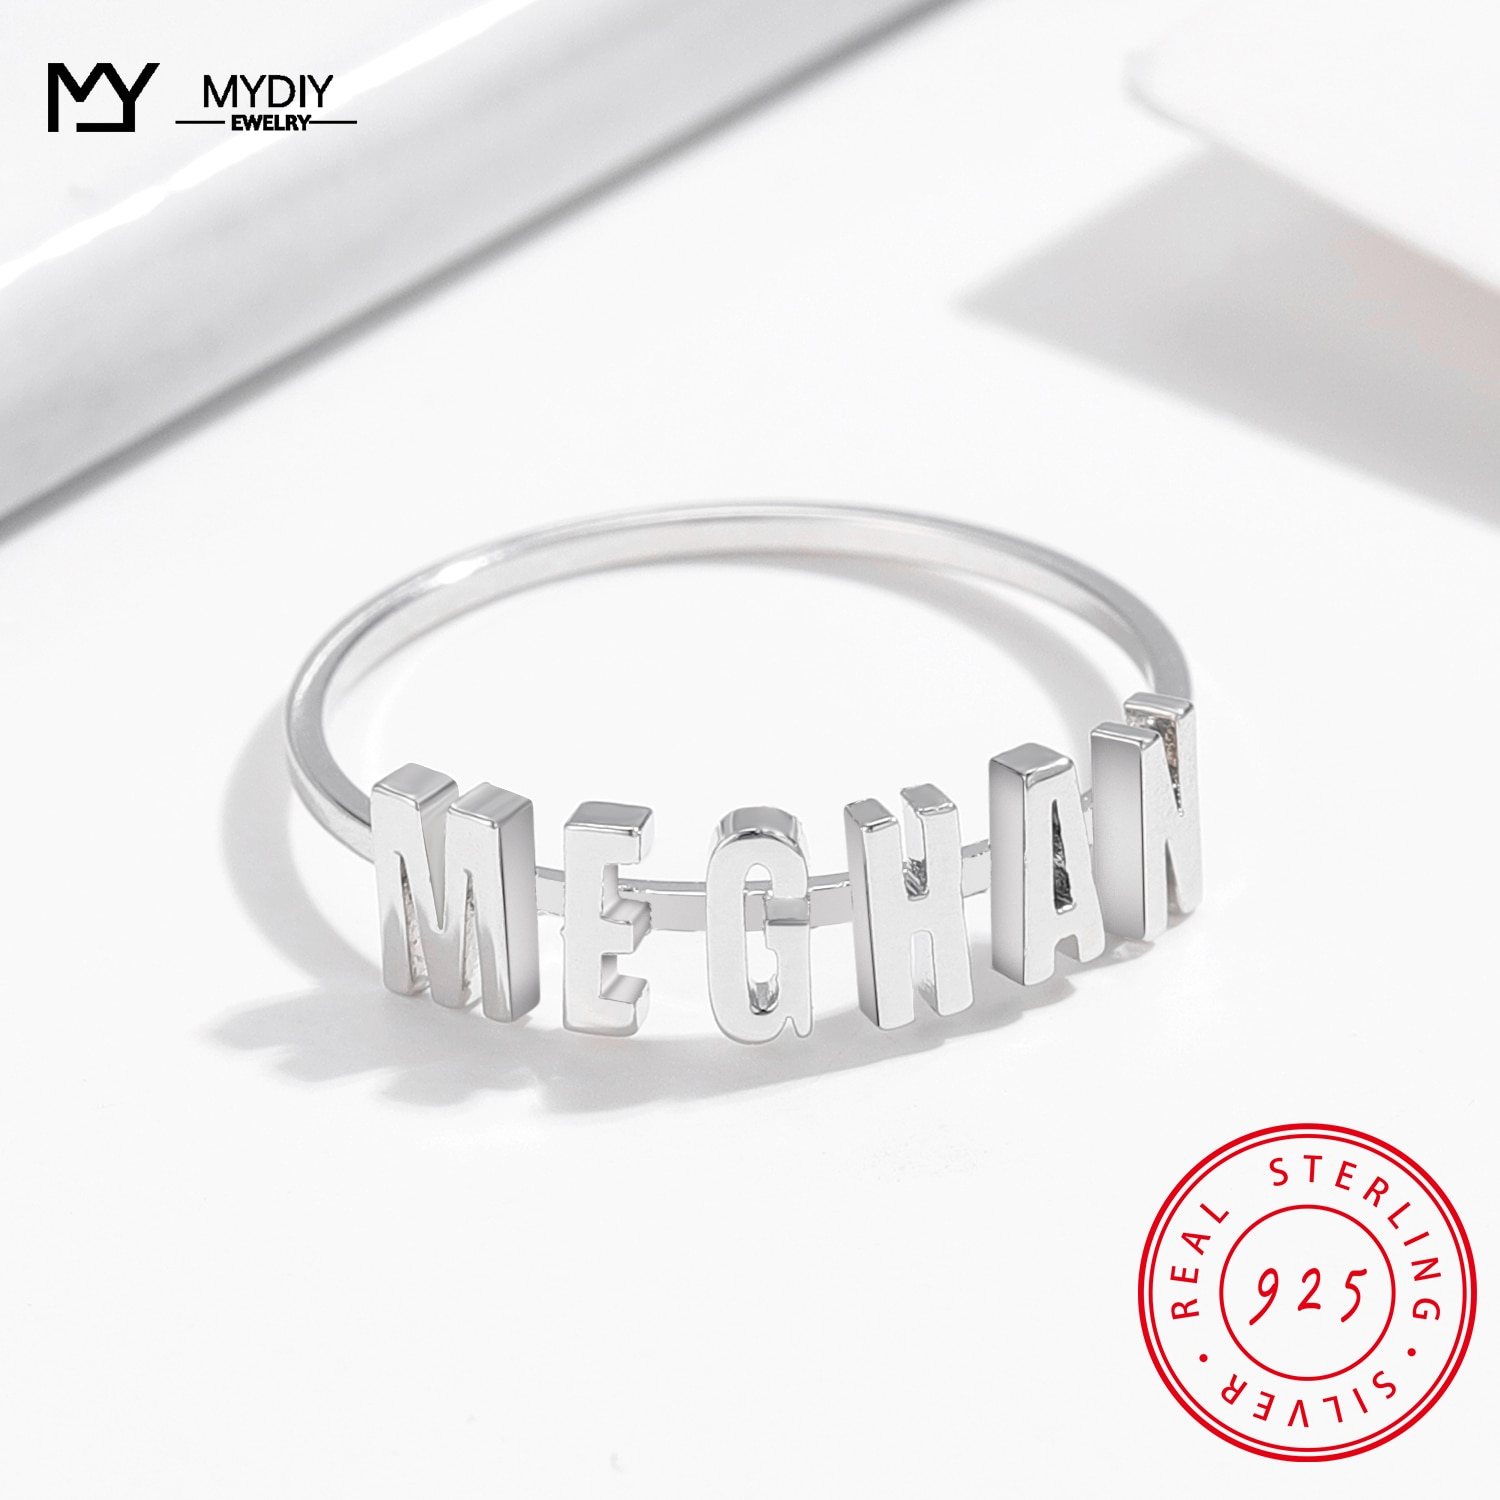 MYDIY Custom Silver Name Ring 925 Sterling Rings Personalized Jewelry Shiny Minimalist Fine 2021 Trend